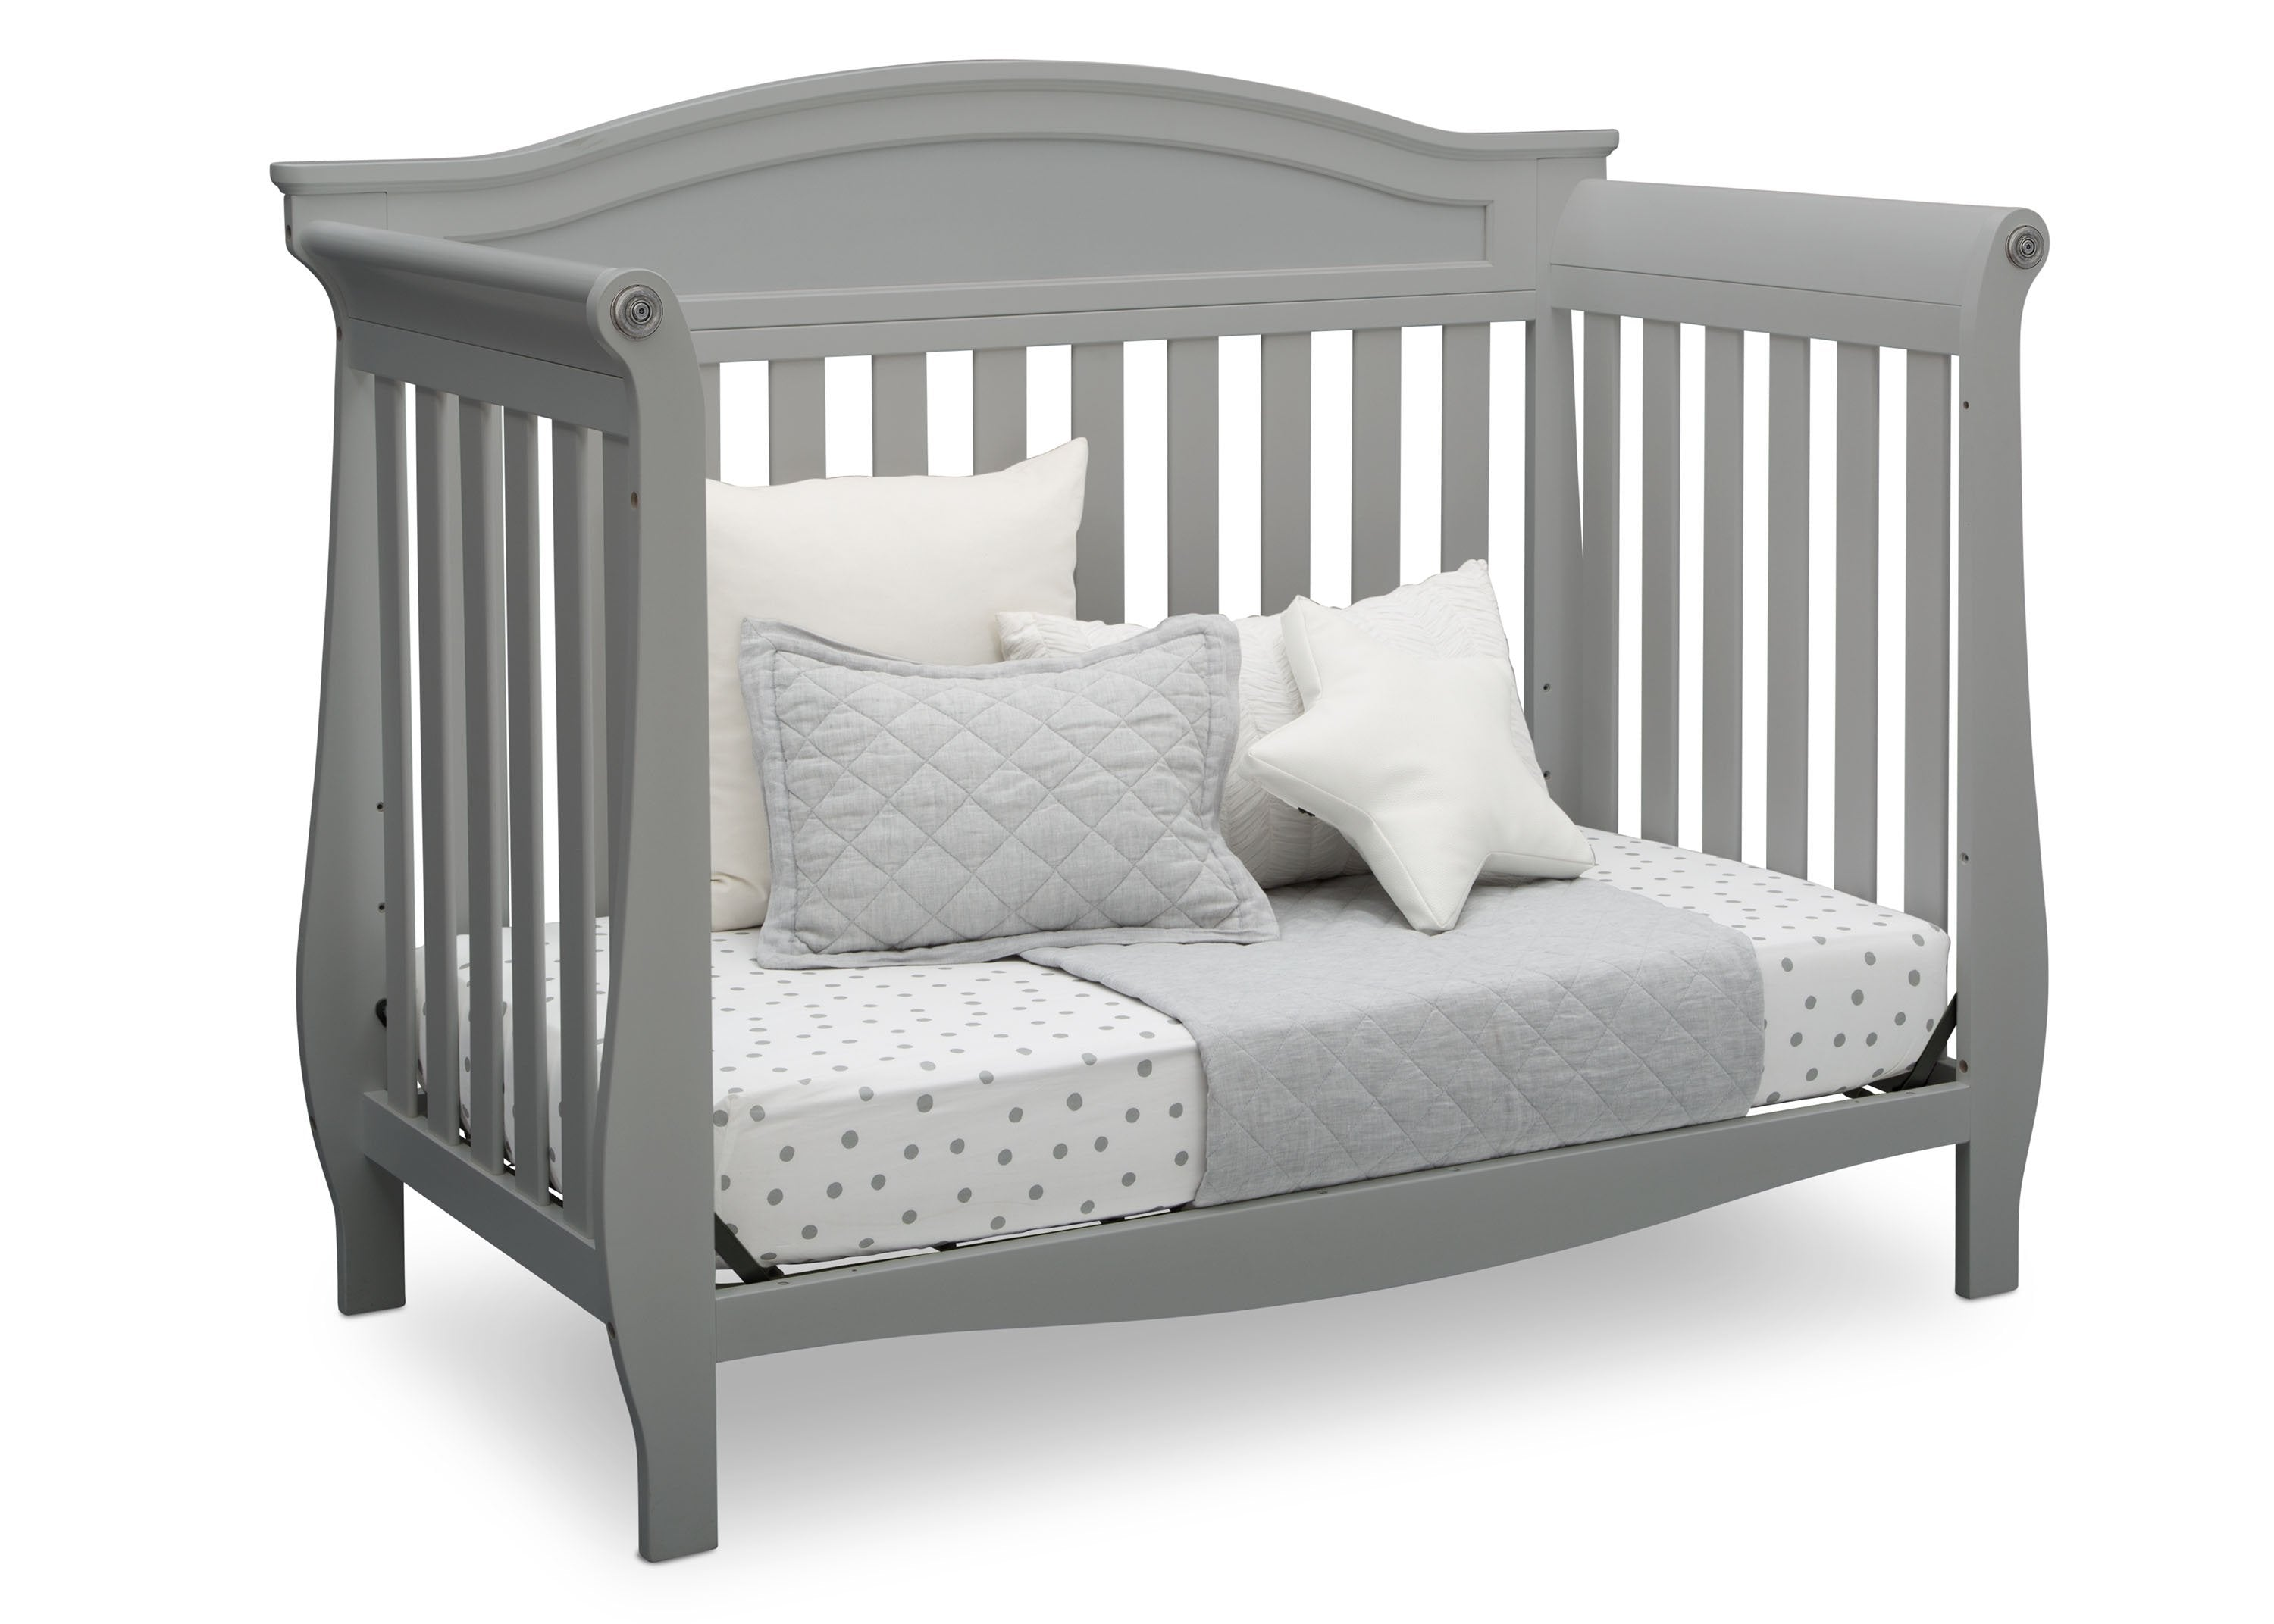 babyletto sprout with crib toddler angle cribs convertible conversion bed kit in